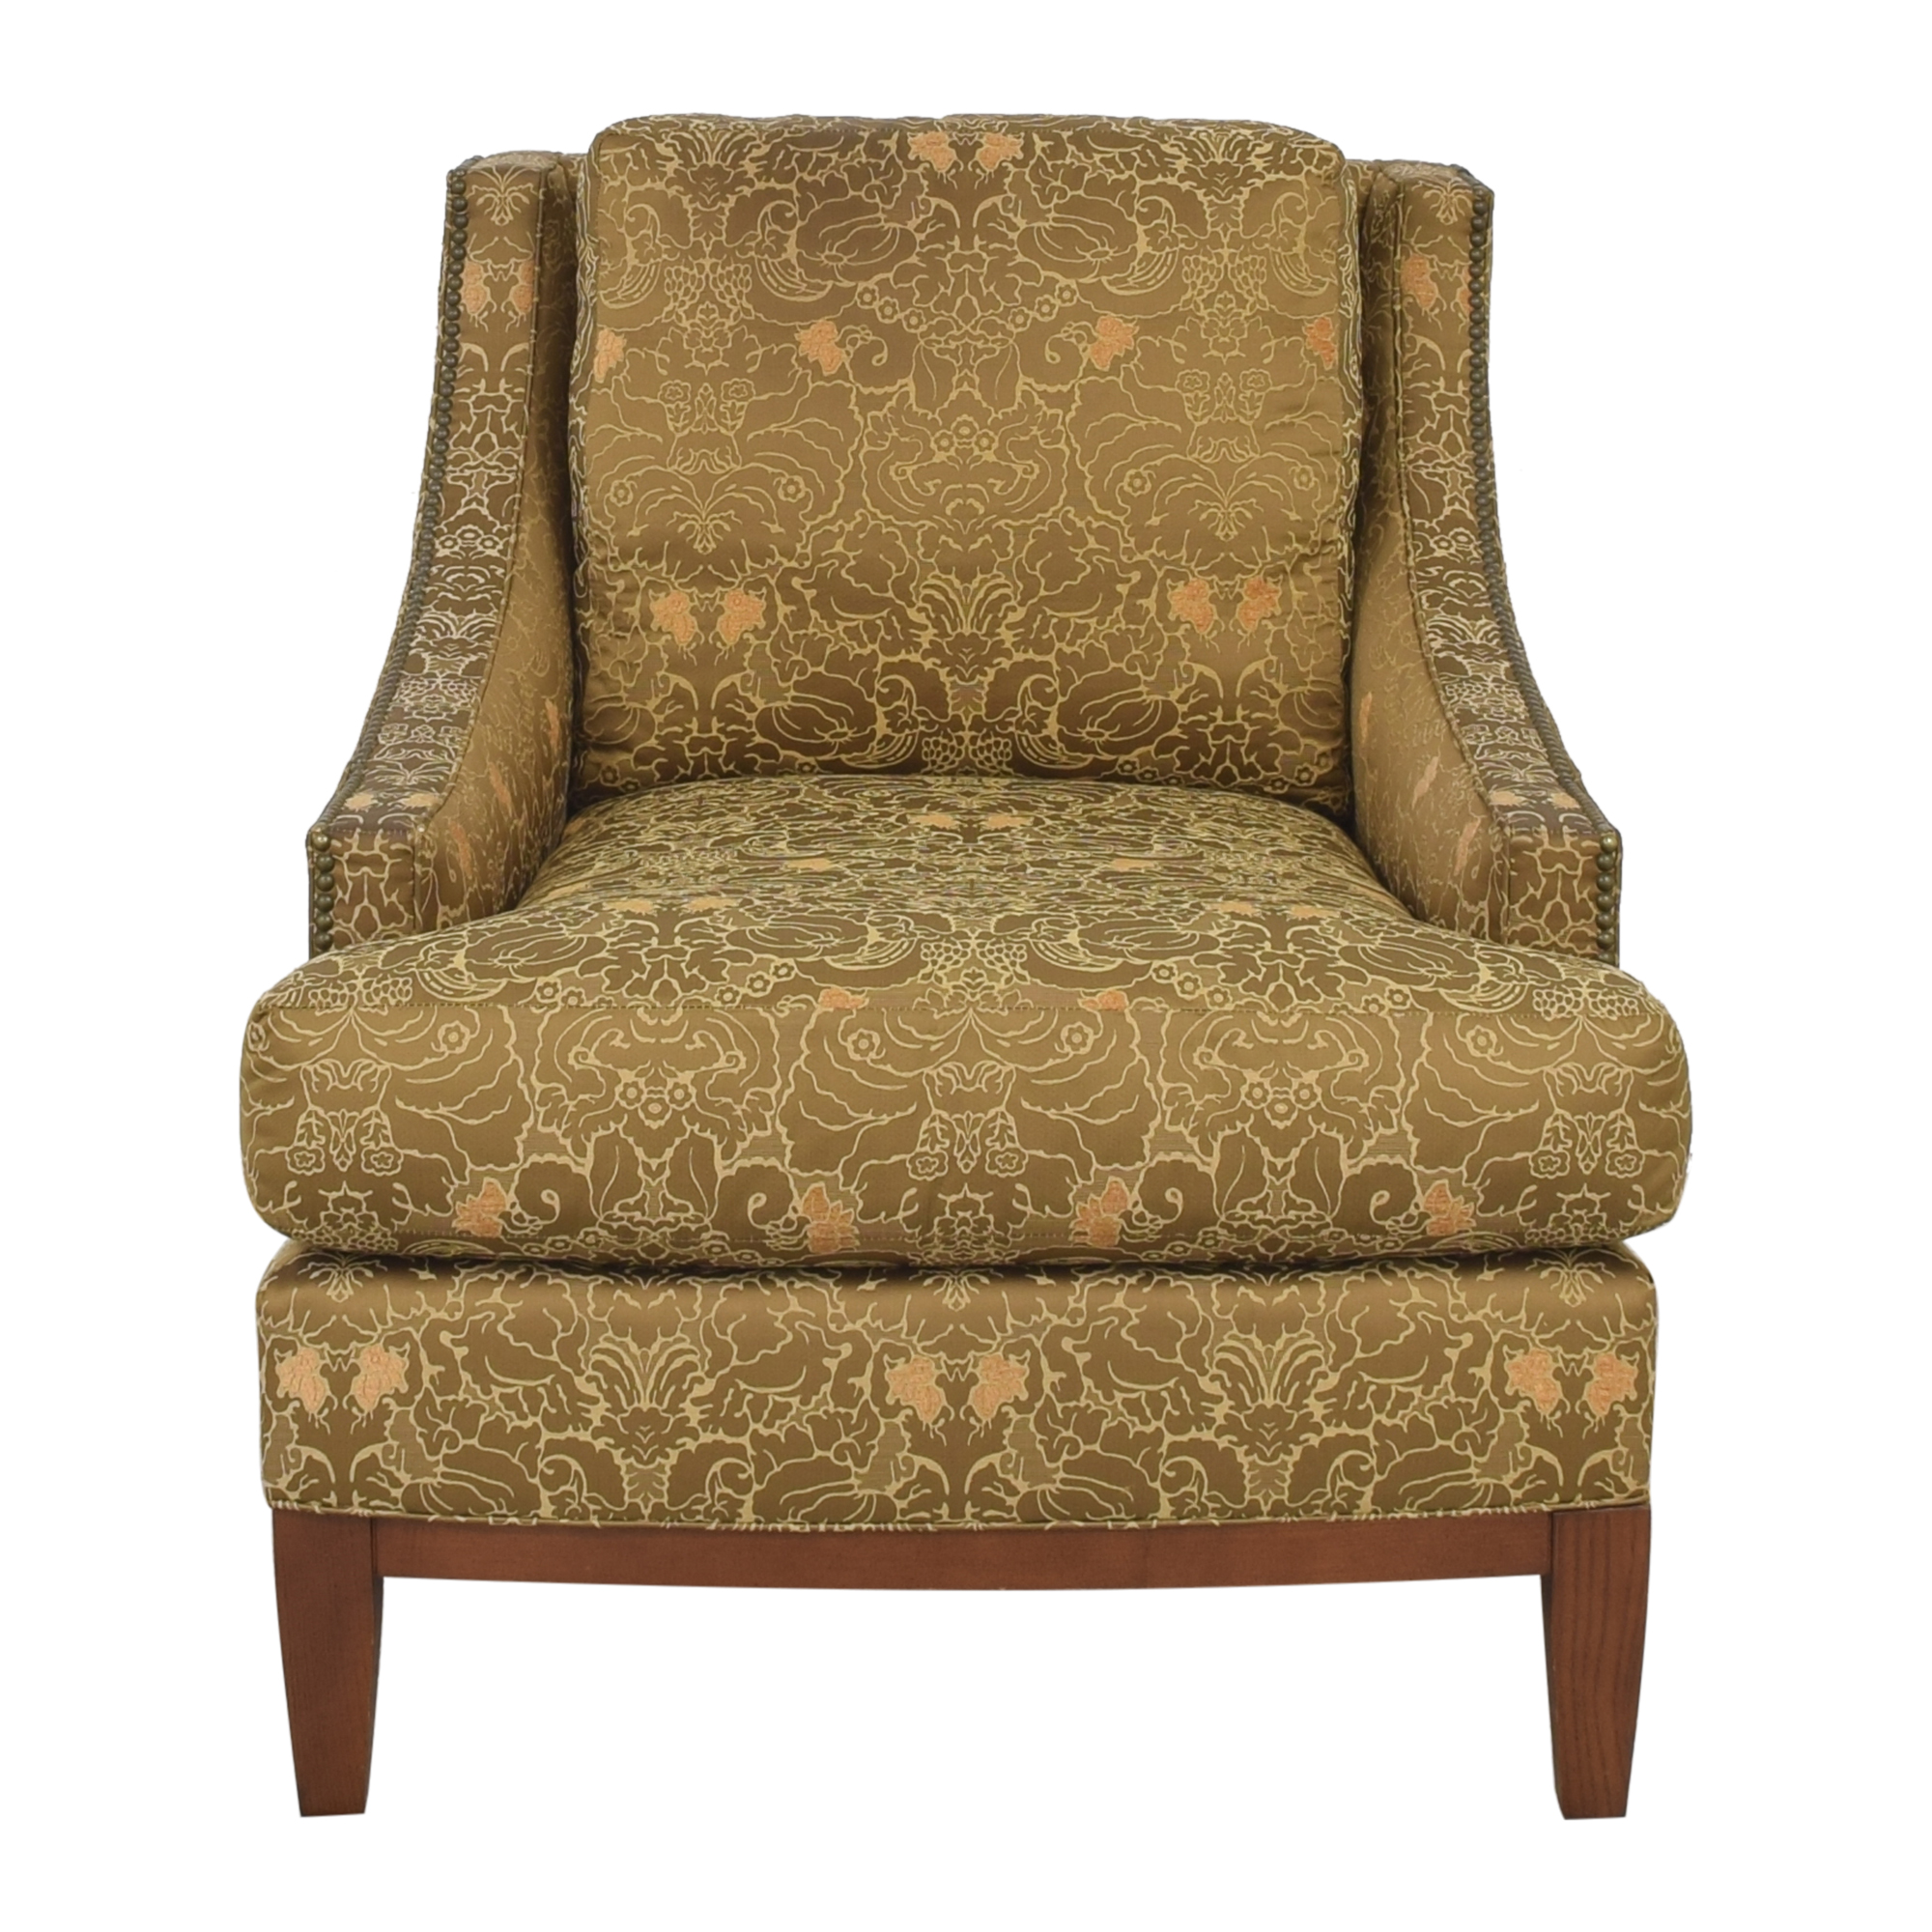 Kravet Classic Accent Chair sale